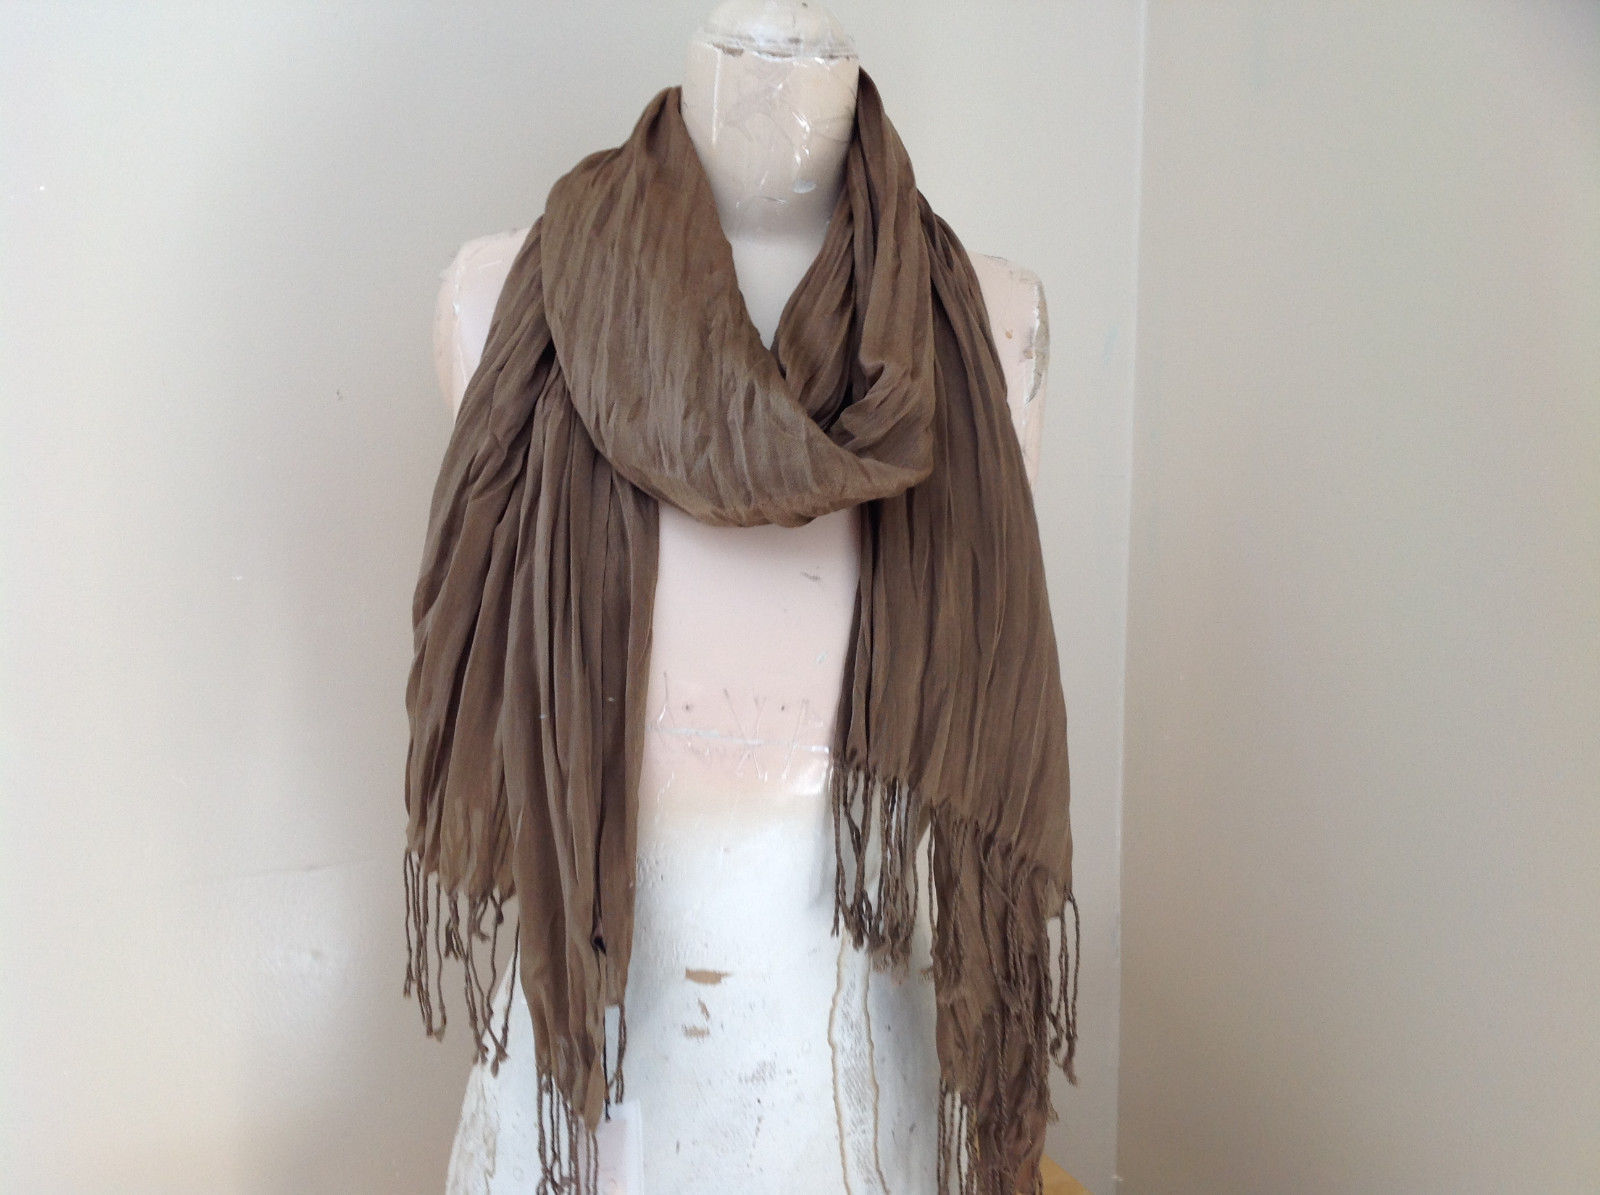 Brown Scrunch Style Silk Cotton Scarf with Tassels TAG ATTACHED by Look